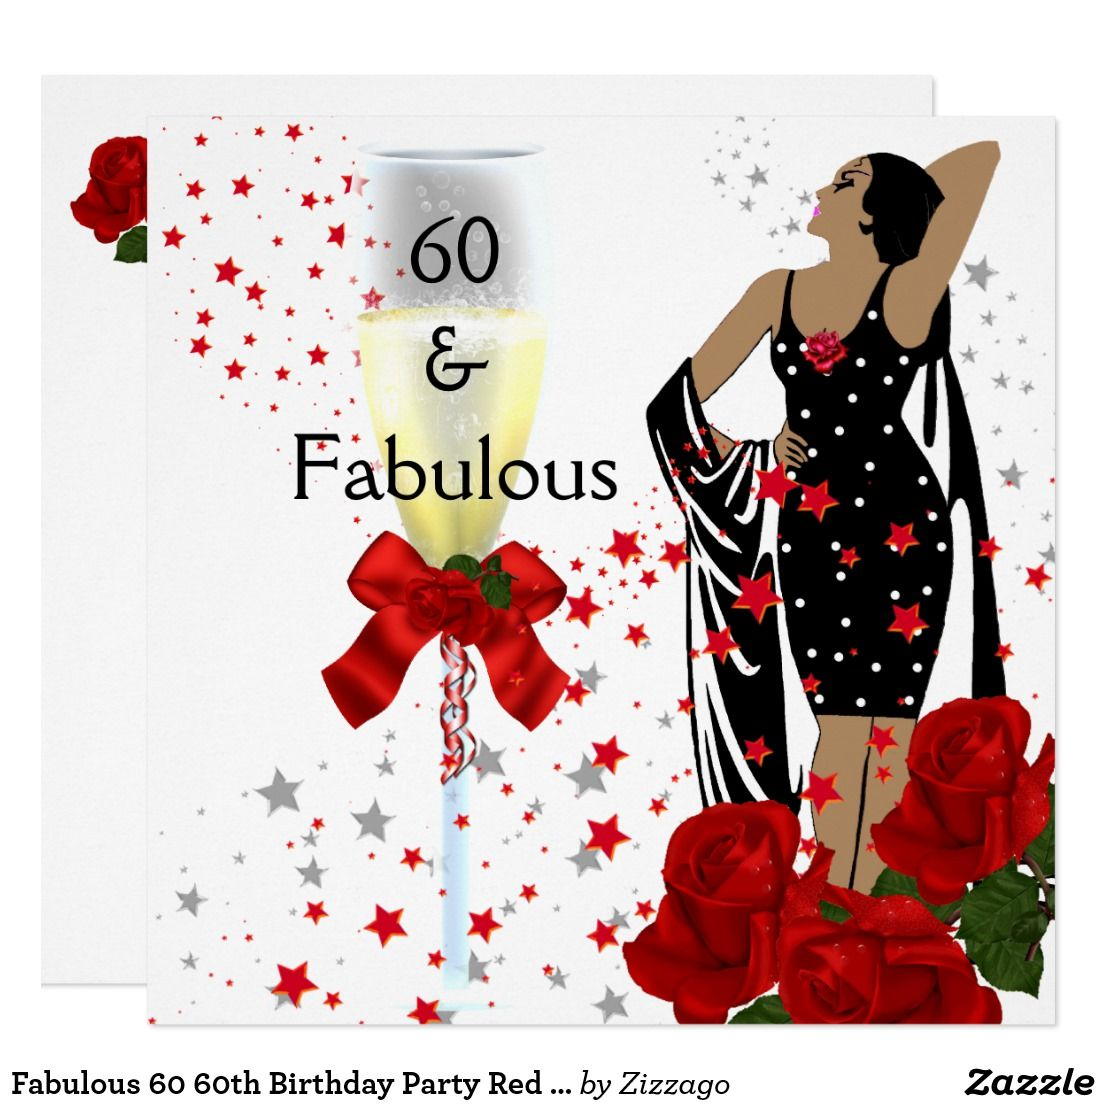 Fabulous 60 60th Birthday Party Red Roses White Invitation ...